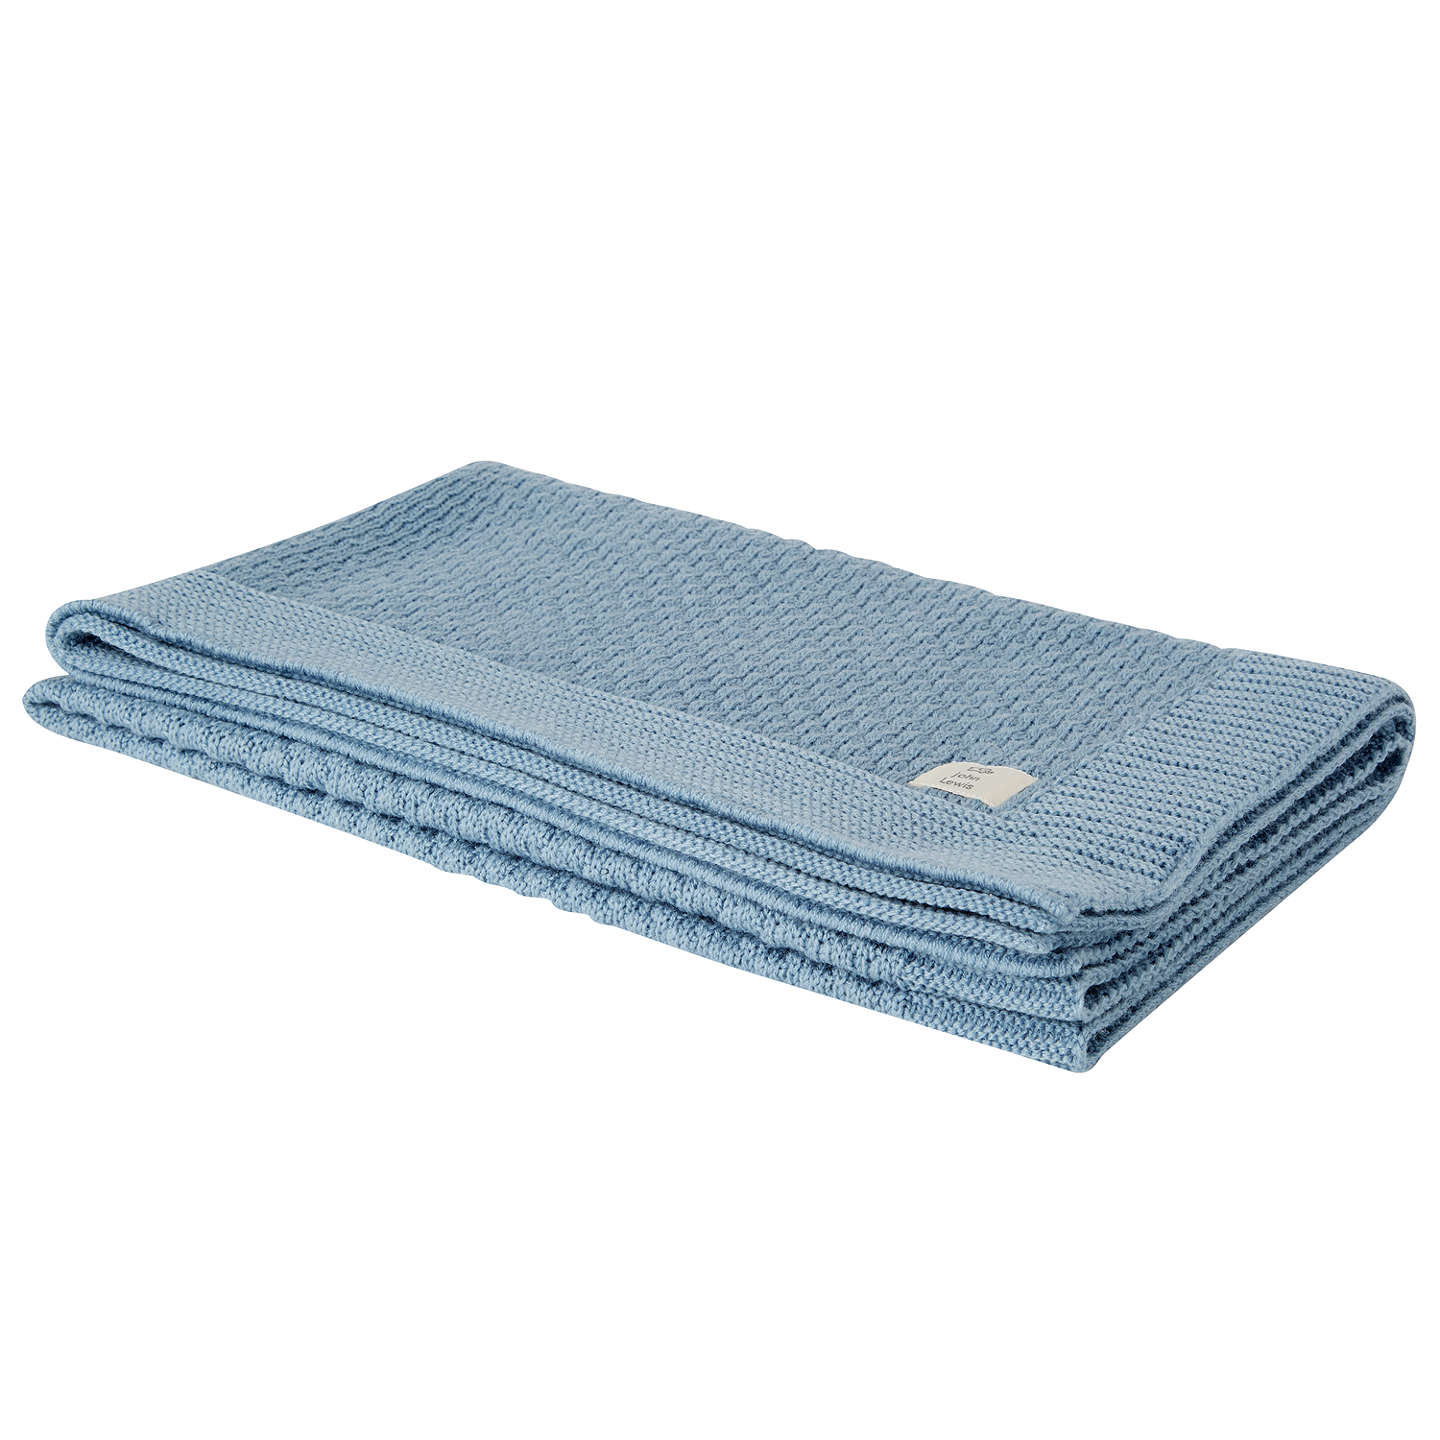 BuyJohn Lewis Honeycomb Pram Blanket, Blue Online at johnlewis.com